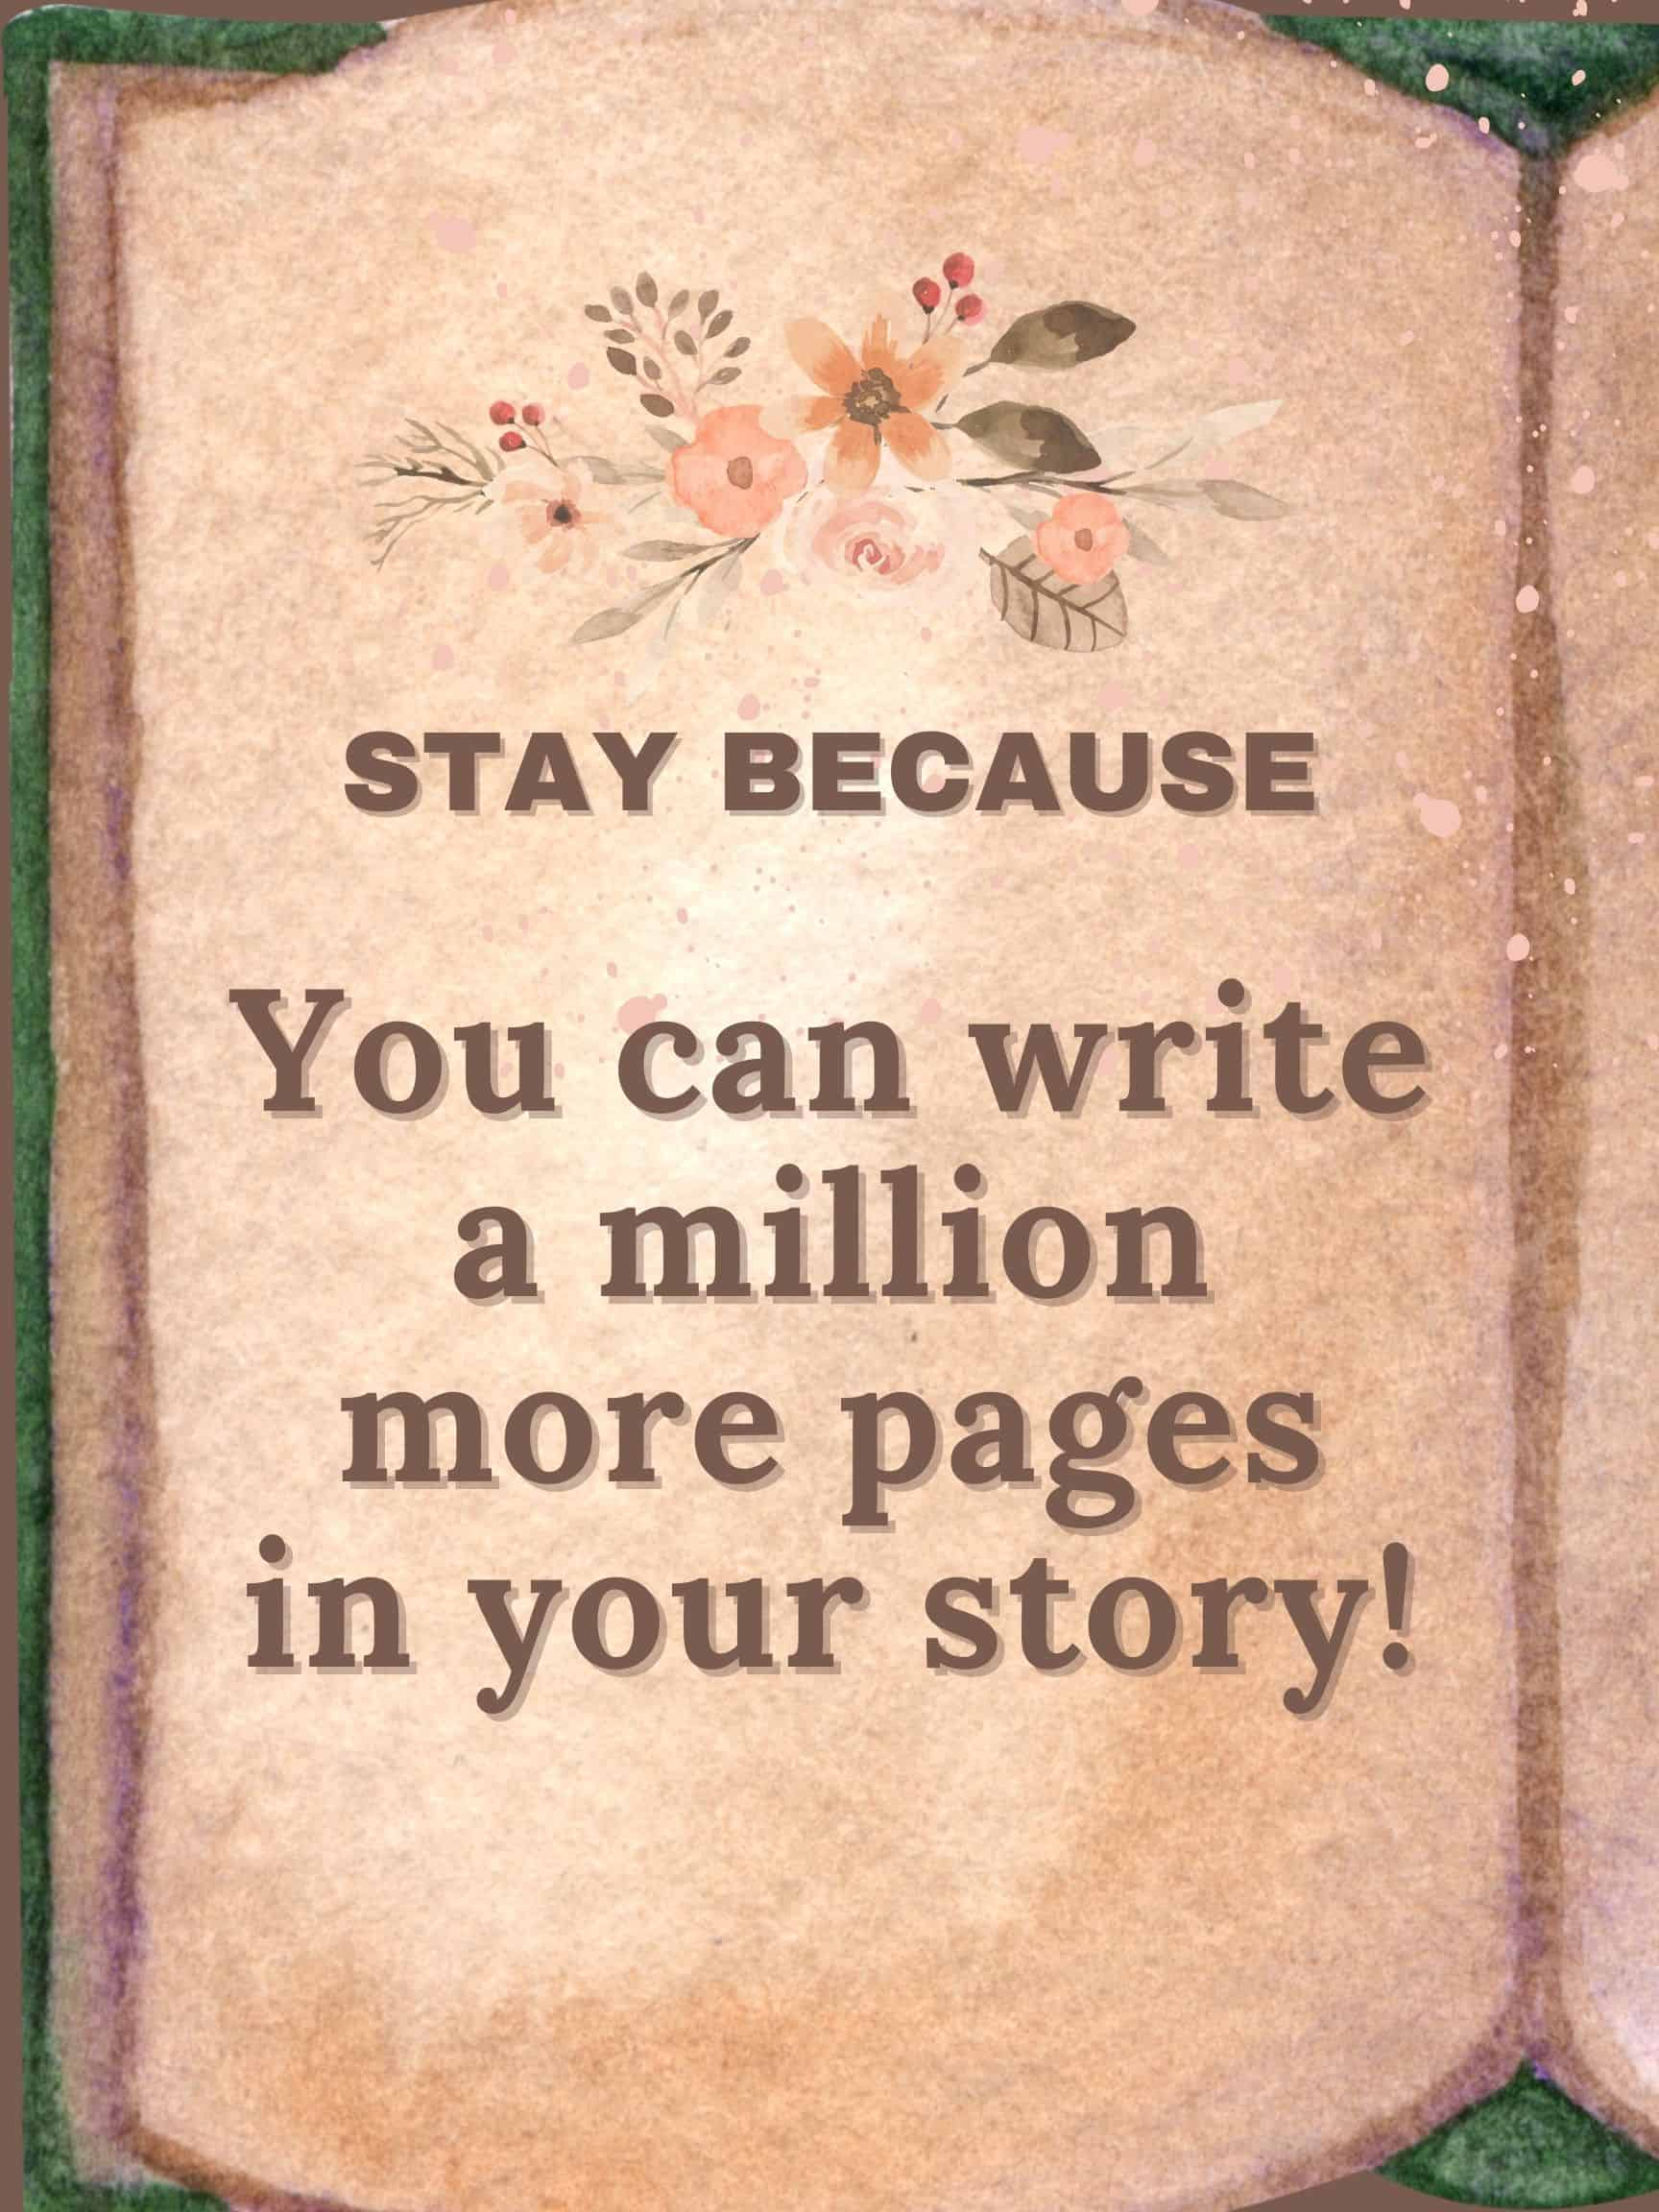 Stay because you can write a million more pages in your story #staybecause